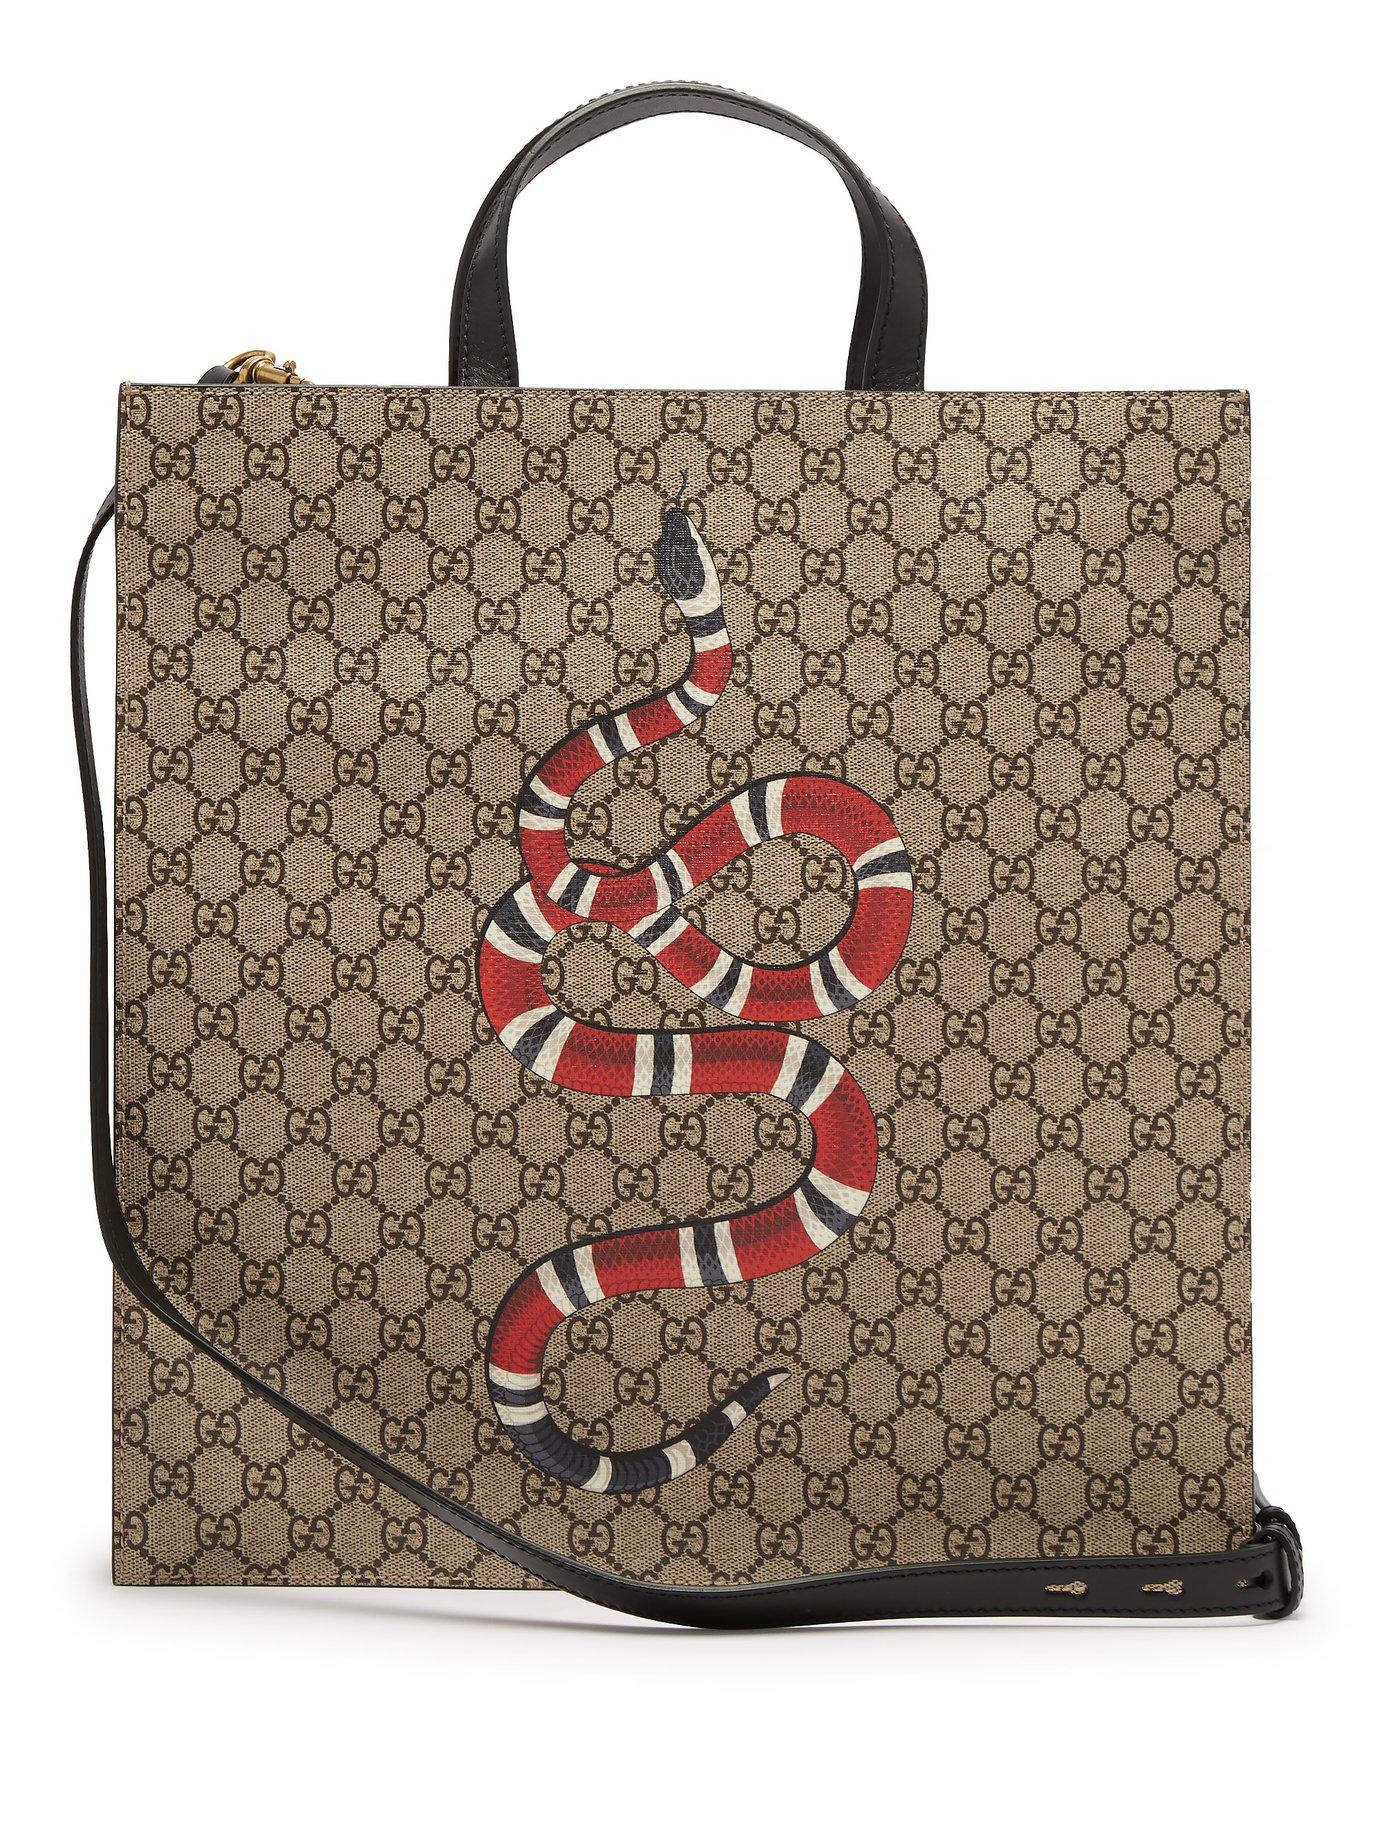 Lyst - Gucci Gg Supreme And Kingsnake Print Tote Bag in Natural for Men 8aeffeecf2